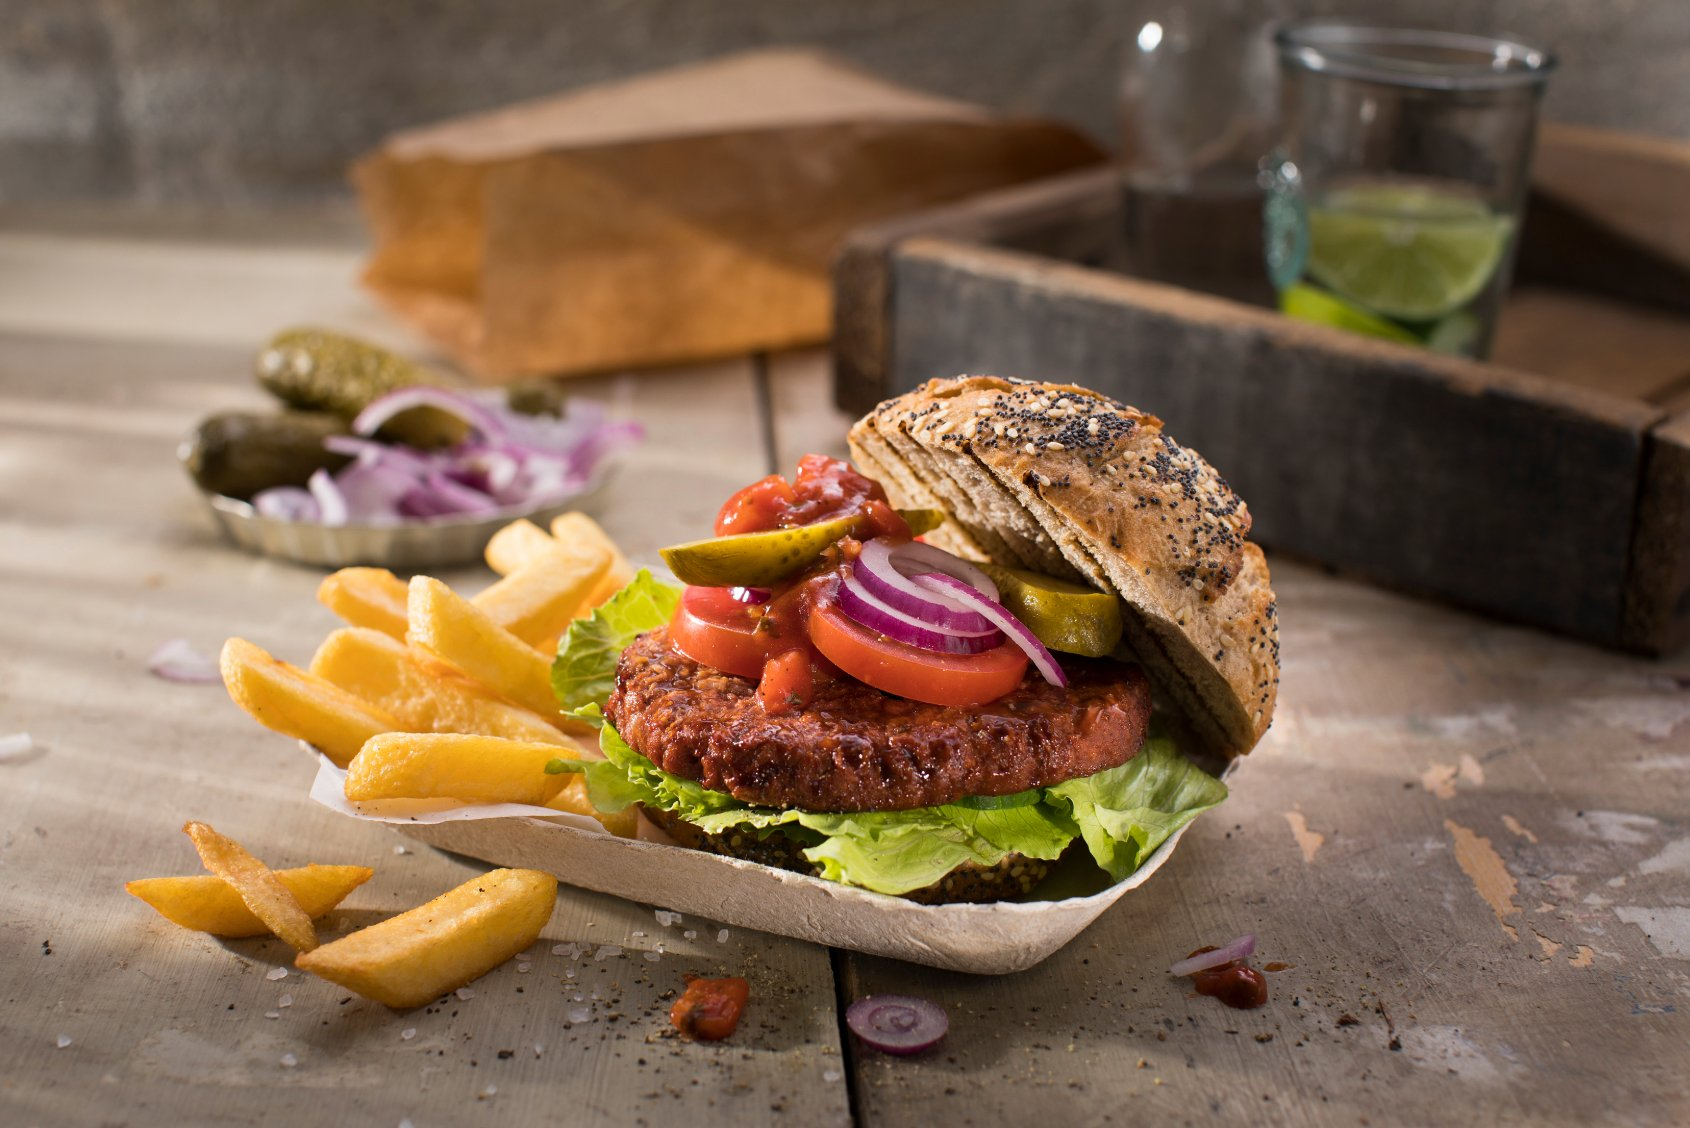 Vegan Aberdeen Angus burger from Vivera